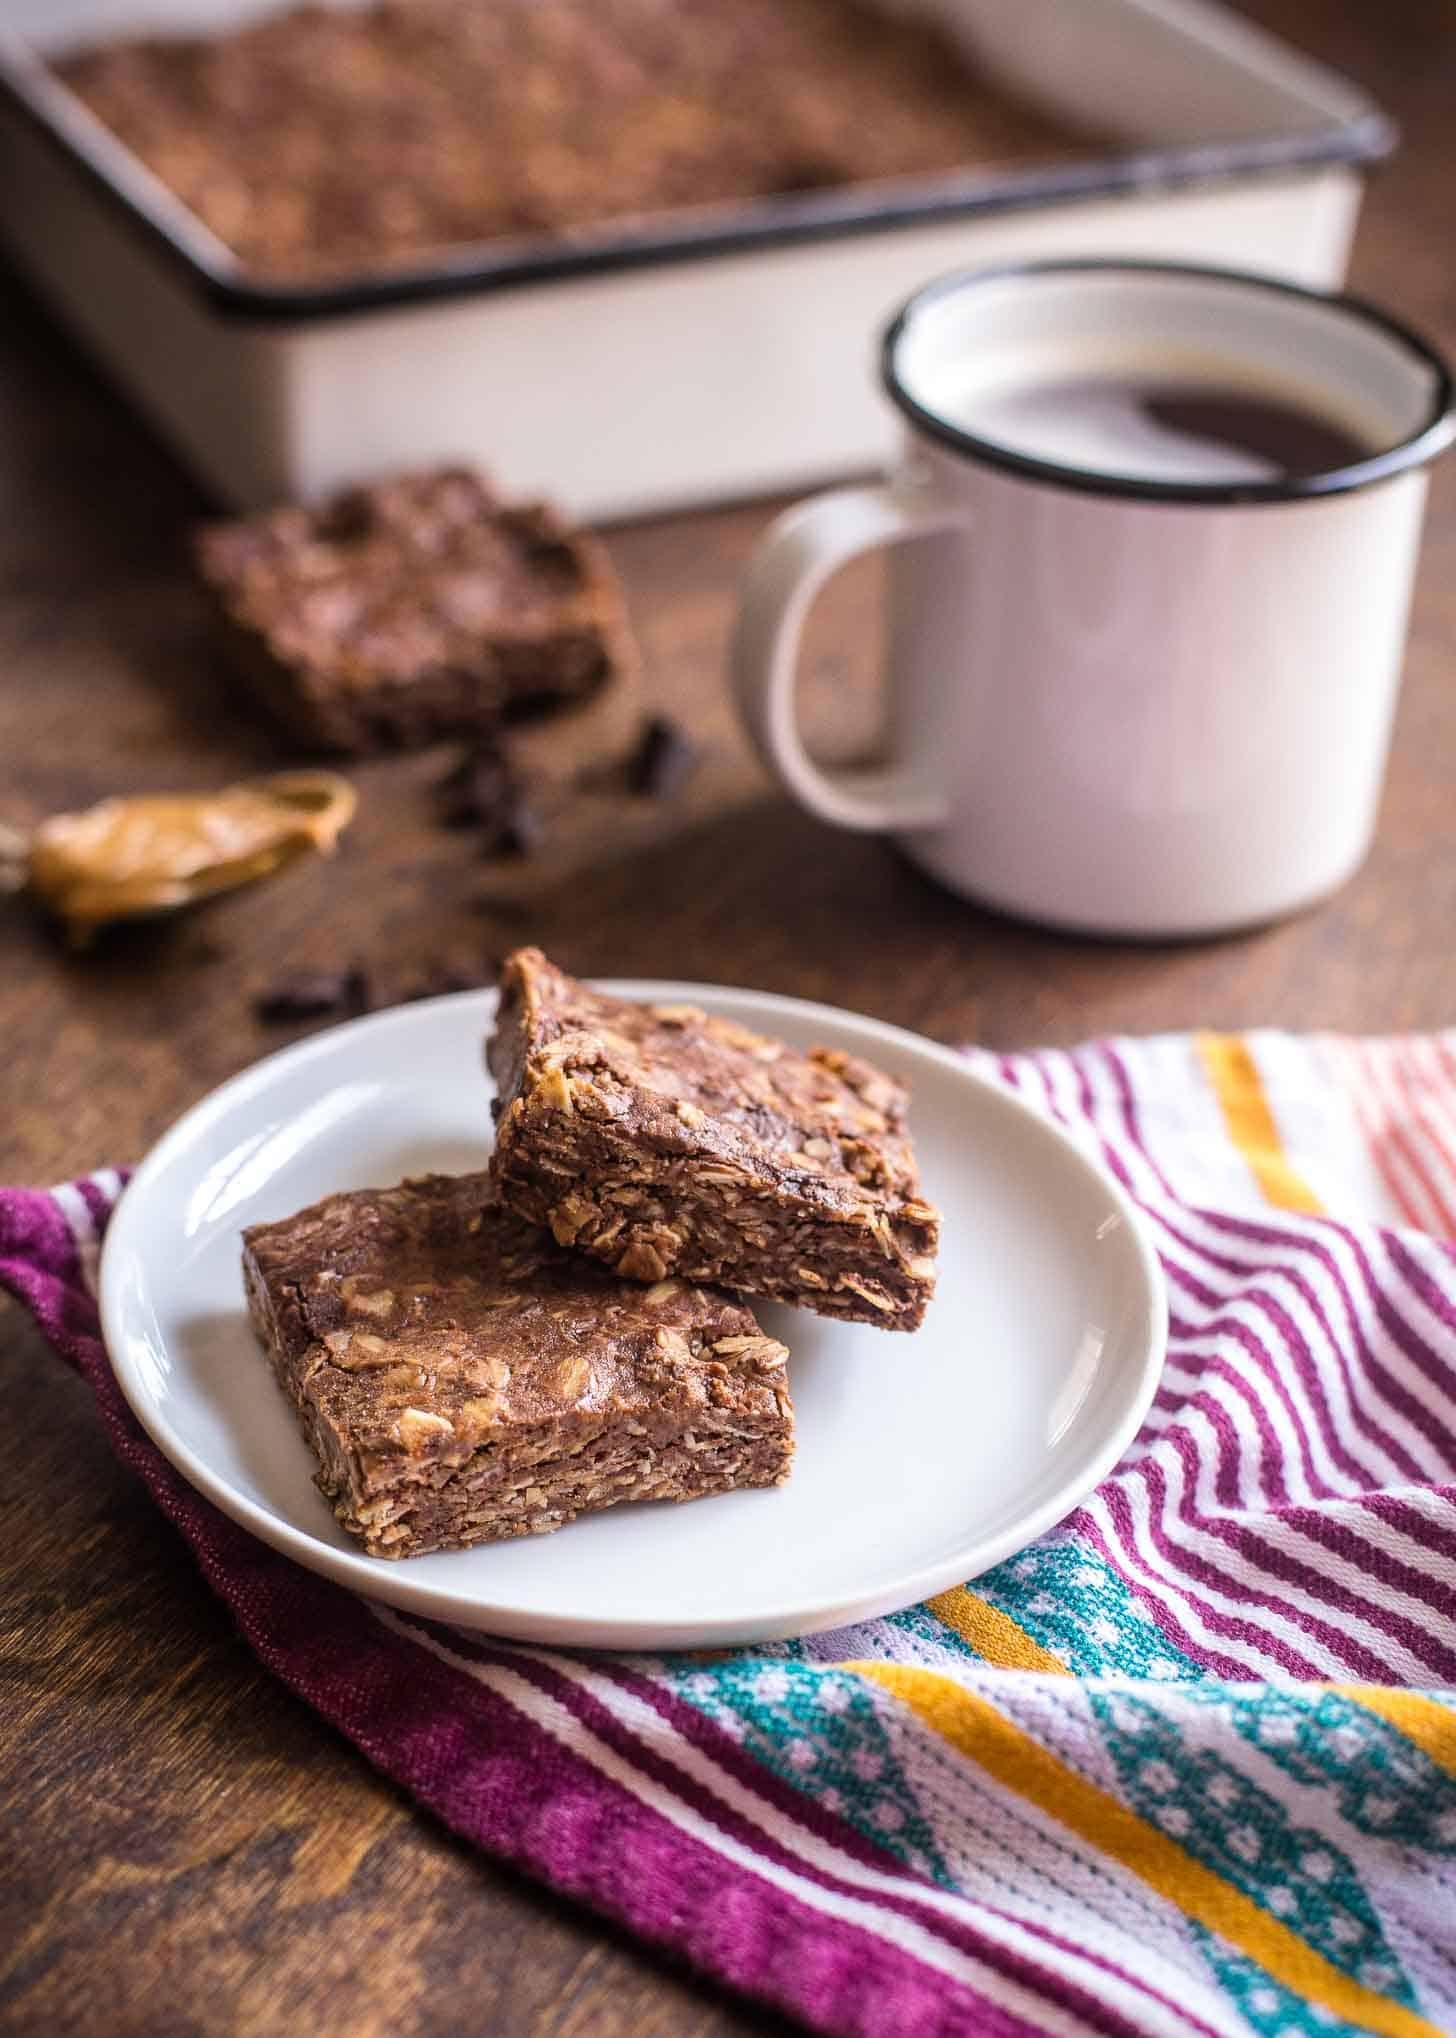 Chocolate Peanut Butter Oat Bars and a cup of coffee